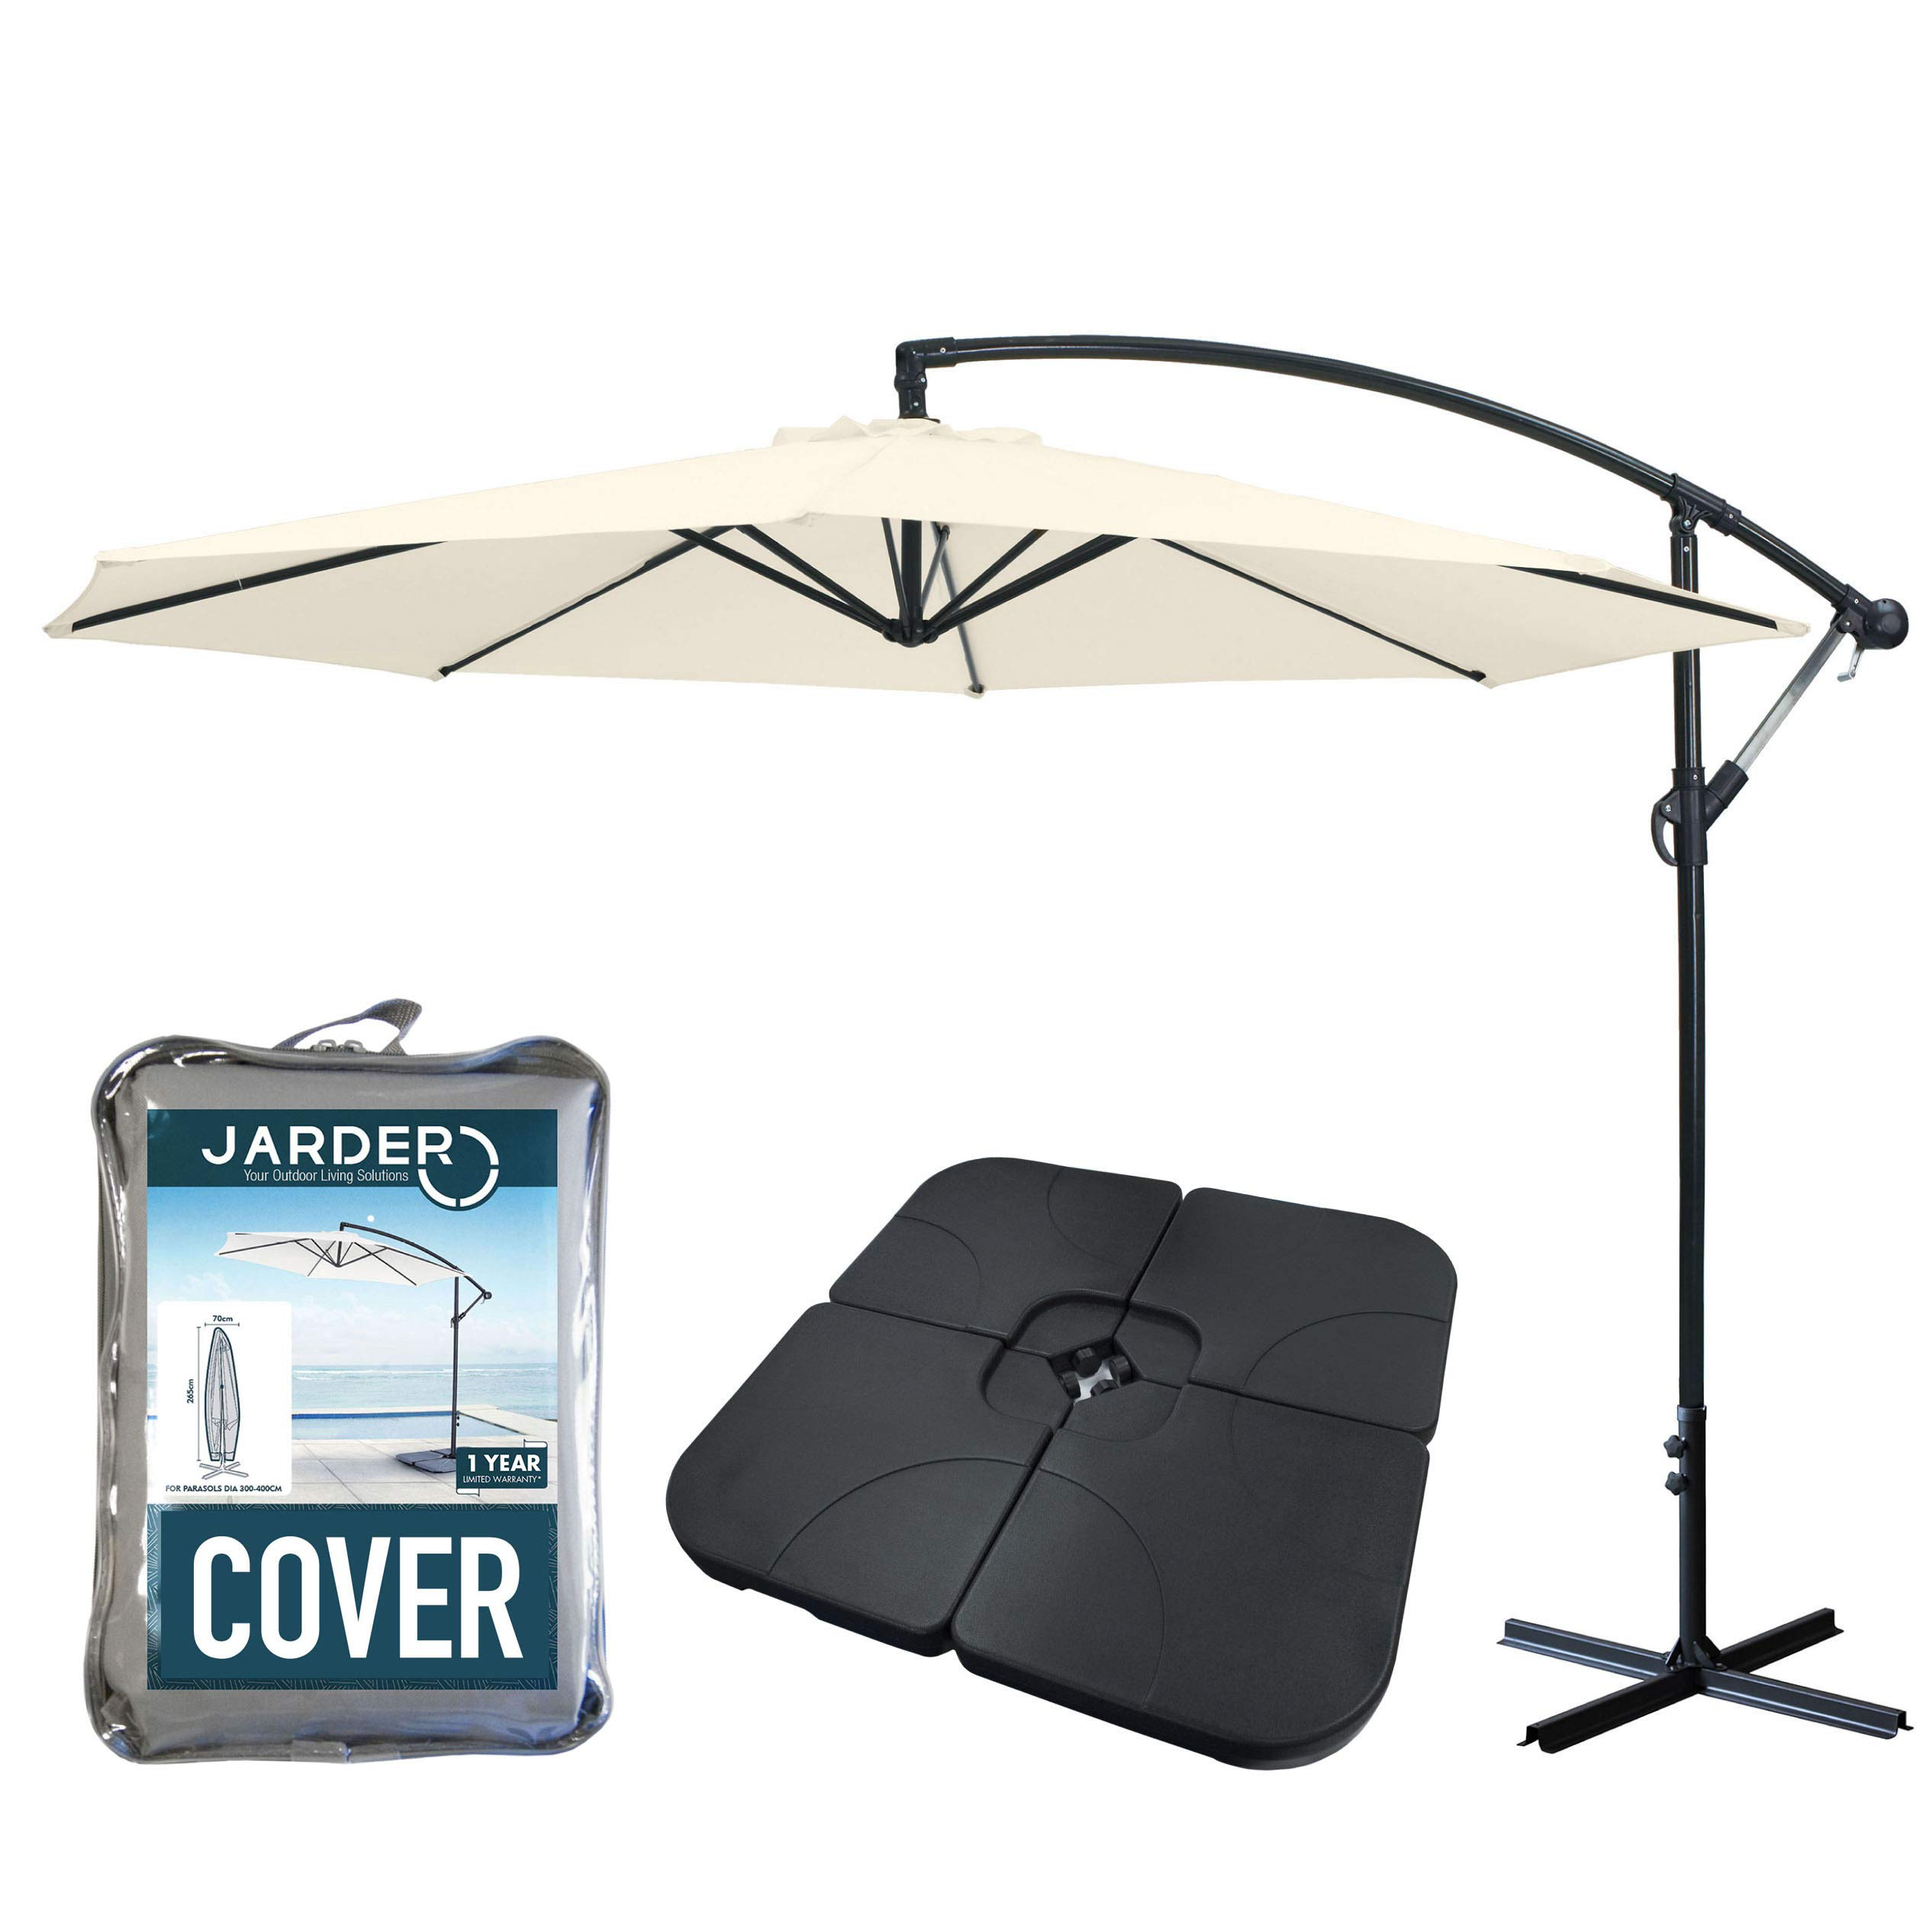 Backyard Deck 48mm GYMAX Weather Resistant /& Round Cast Iron Effect Parasol Stand for Garden Bronze 11KG Umbrella Base with Adjustable Tightening Knob for Pole Diameter 38mm Patio